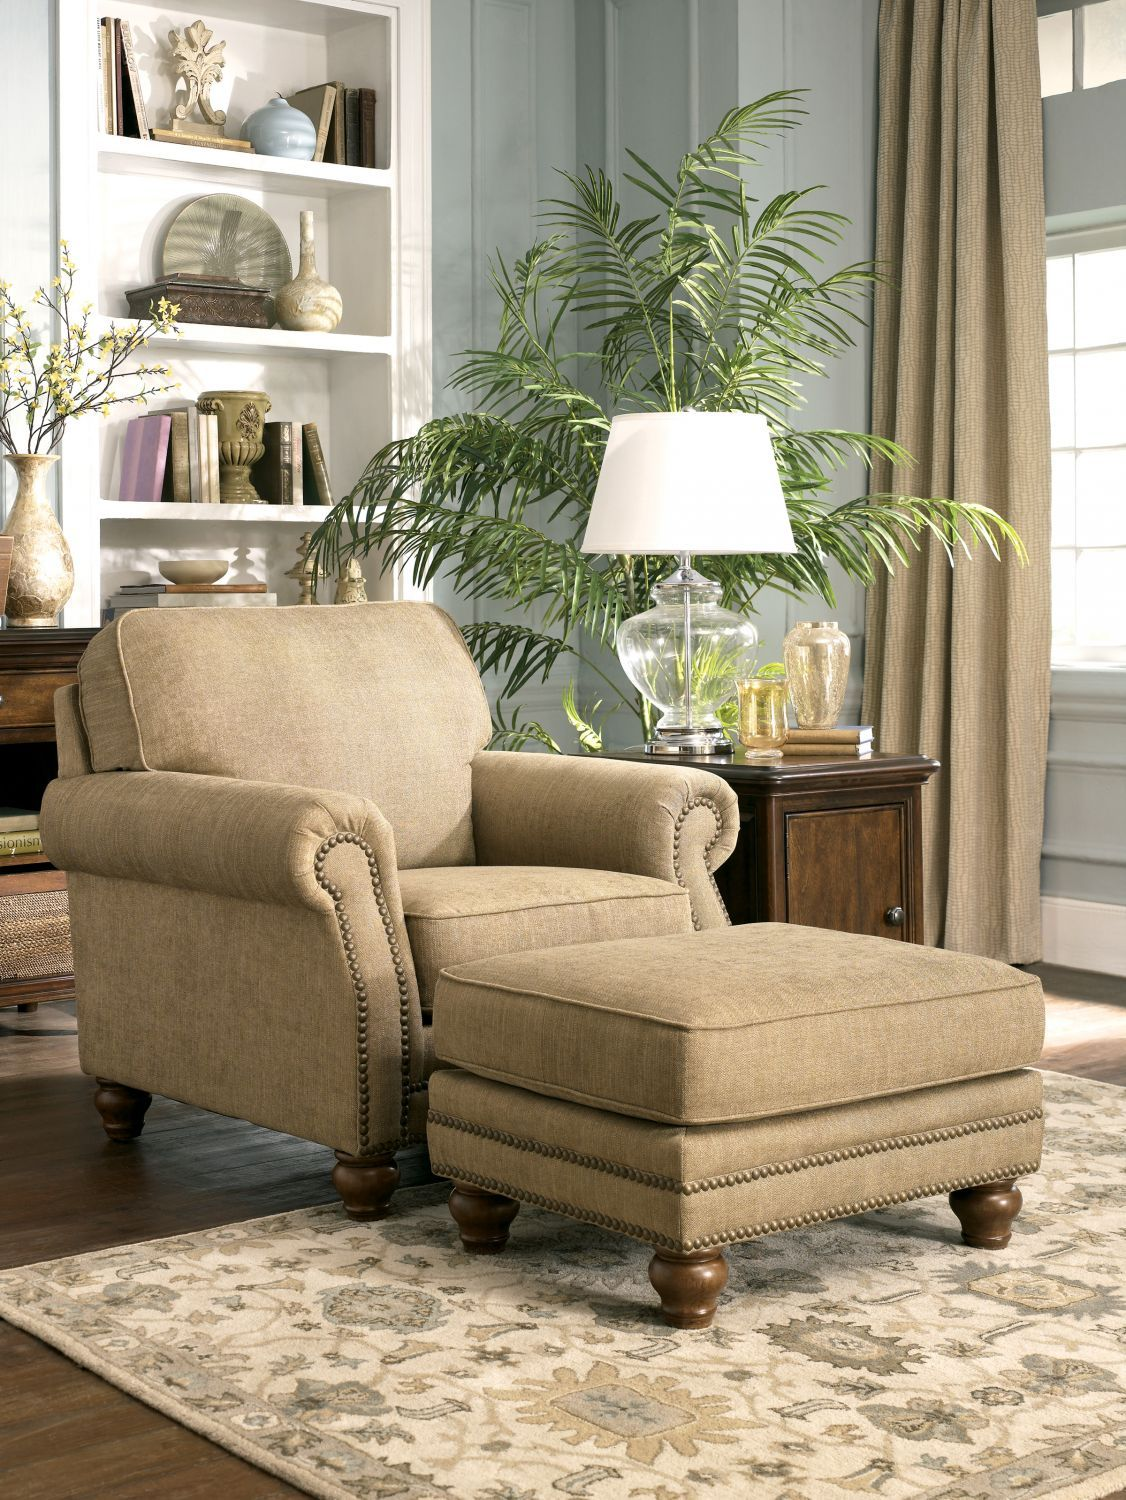 best reading chair australia coleman rocking the 25 43 and ottoman ideas on pinterest